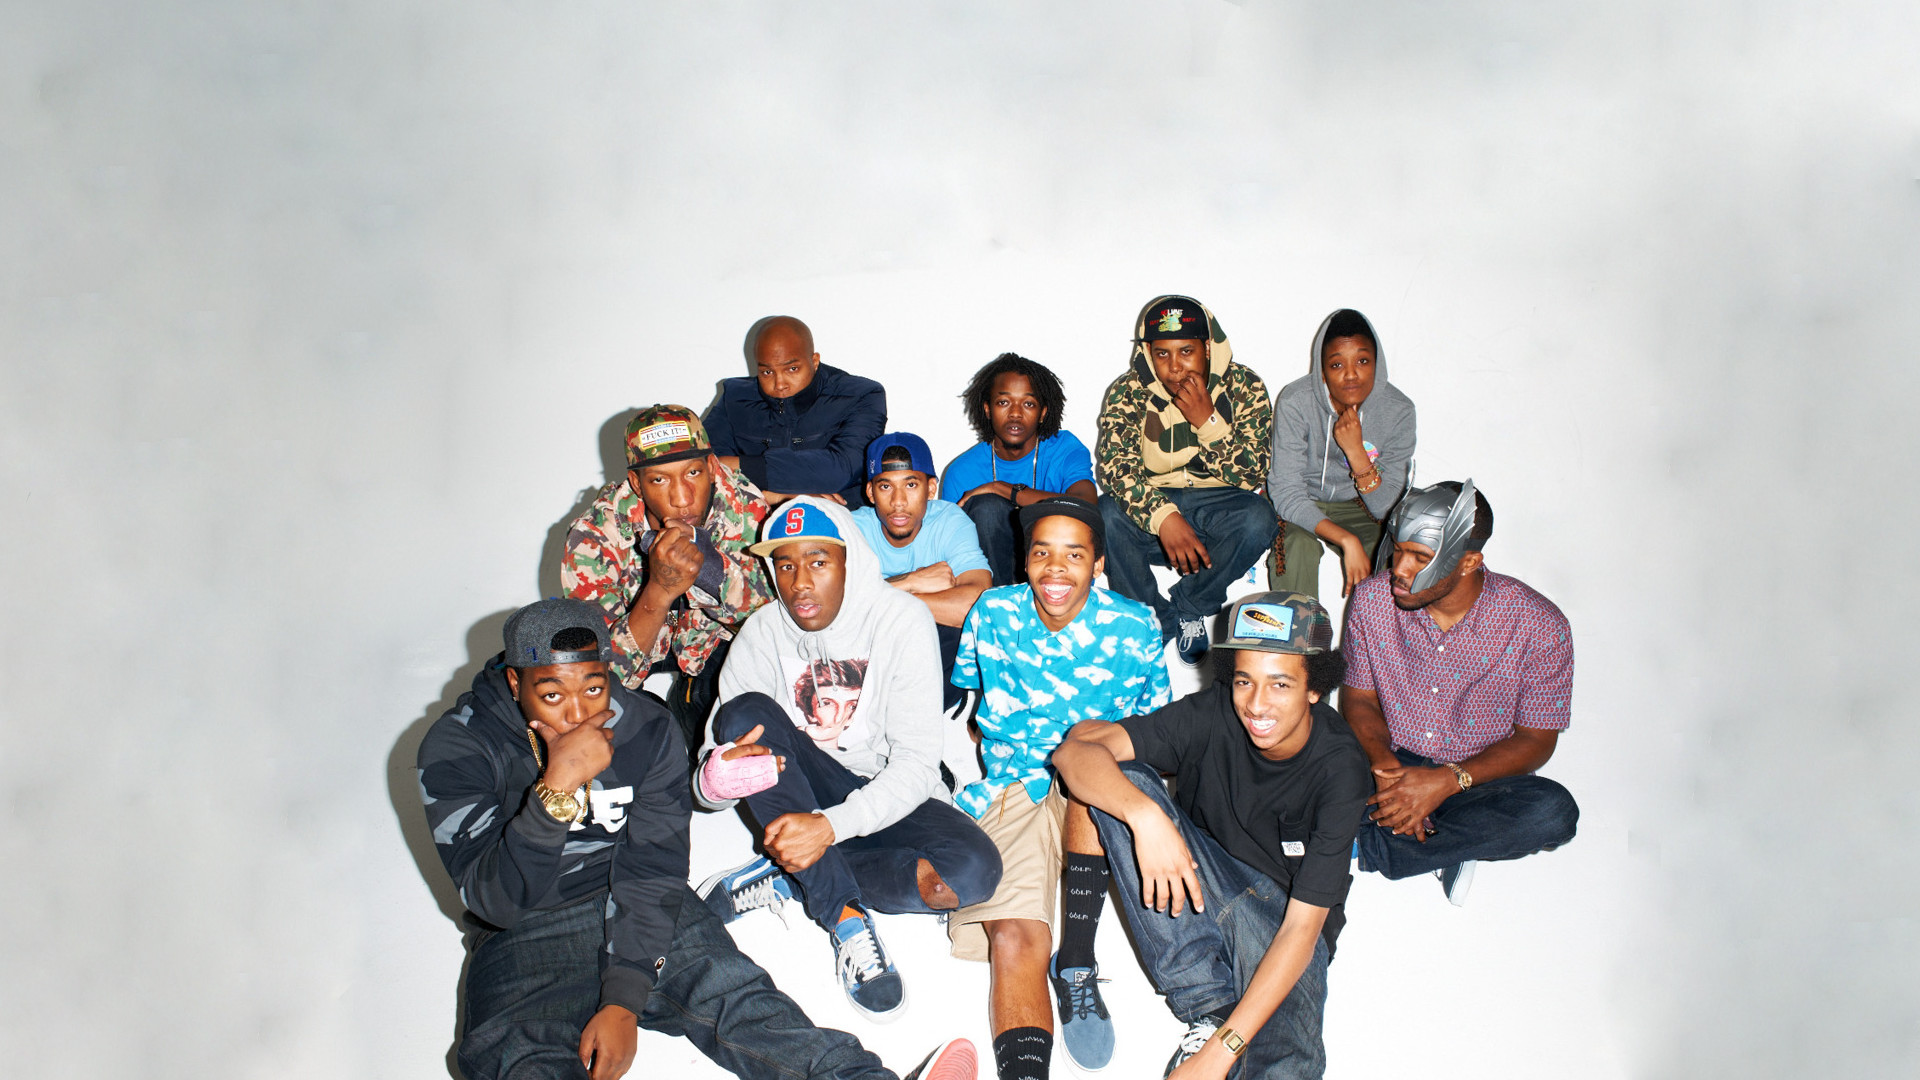 1920x1080 ... hip hop odd future wallpapers hd desktop and mobile backgrounds ...